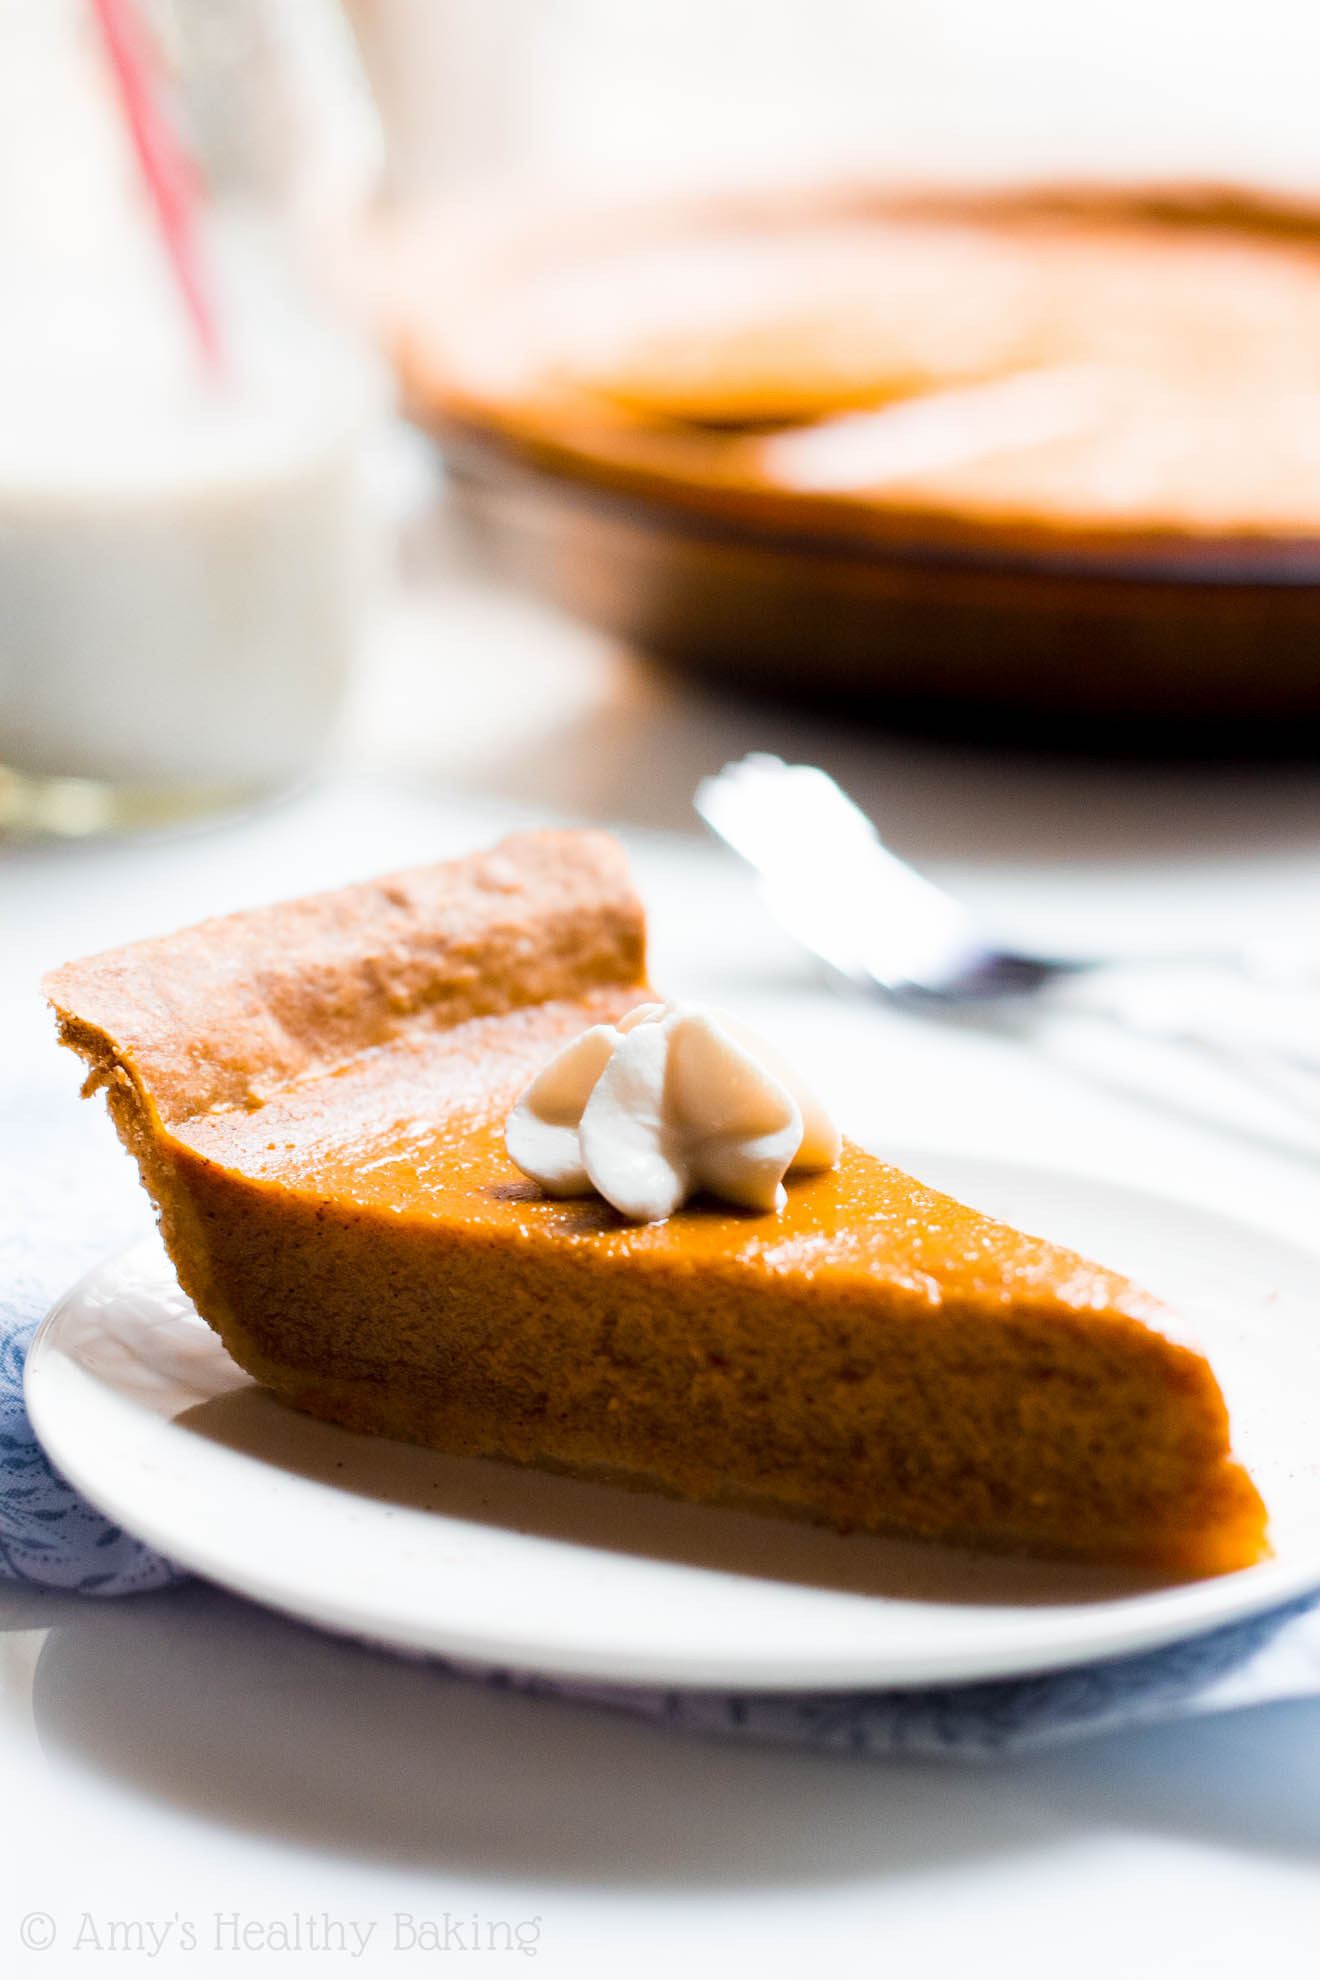 Pumpkin Pie Healthy  The Ultimate Healthy Pumpkin Pie